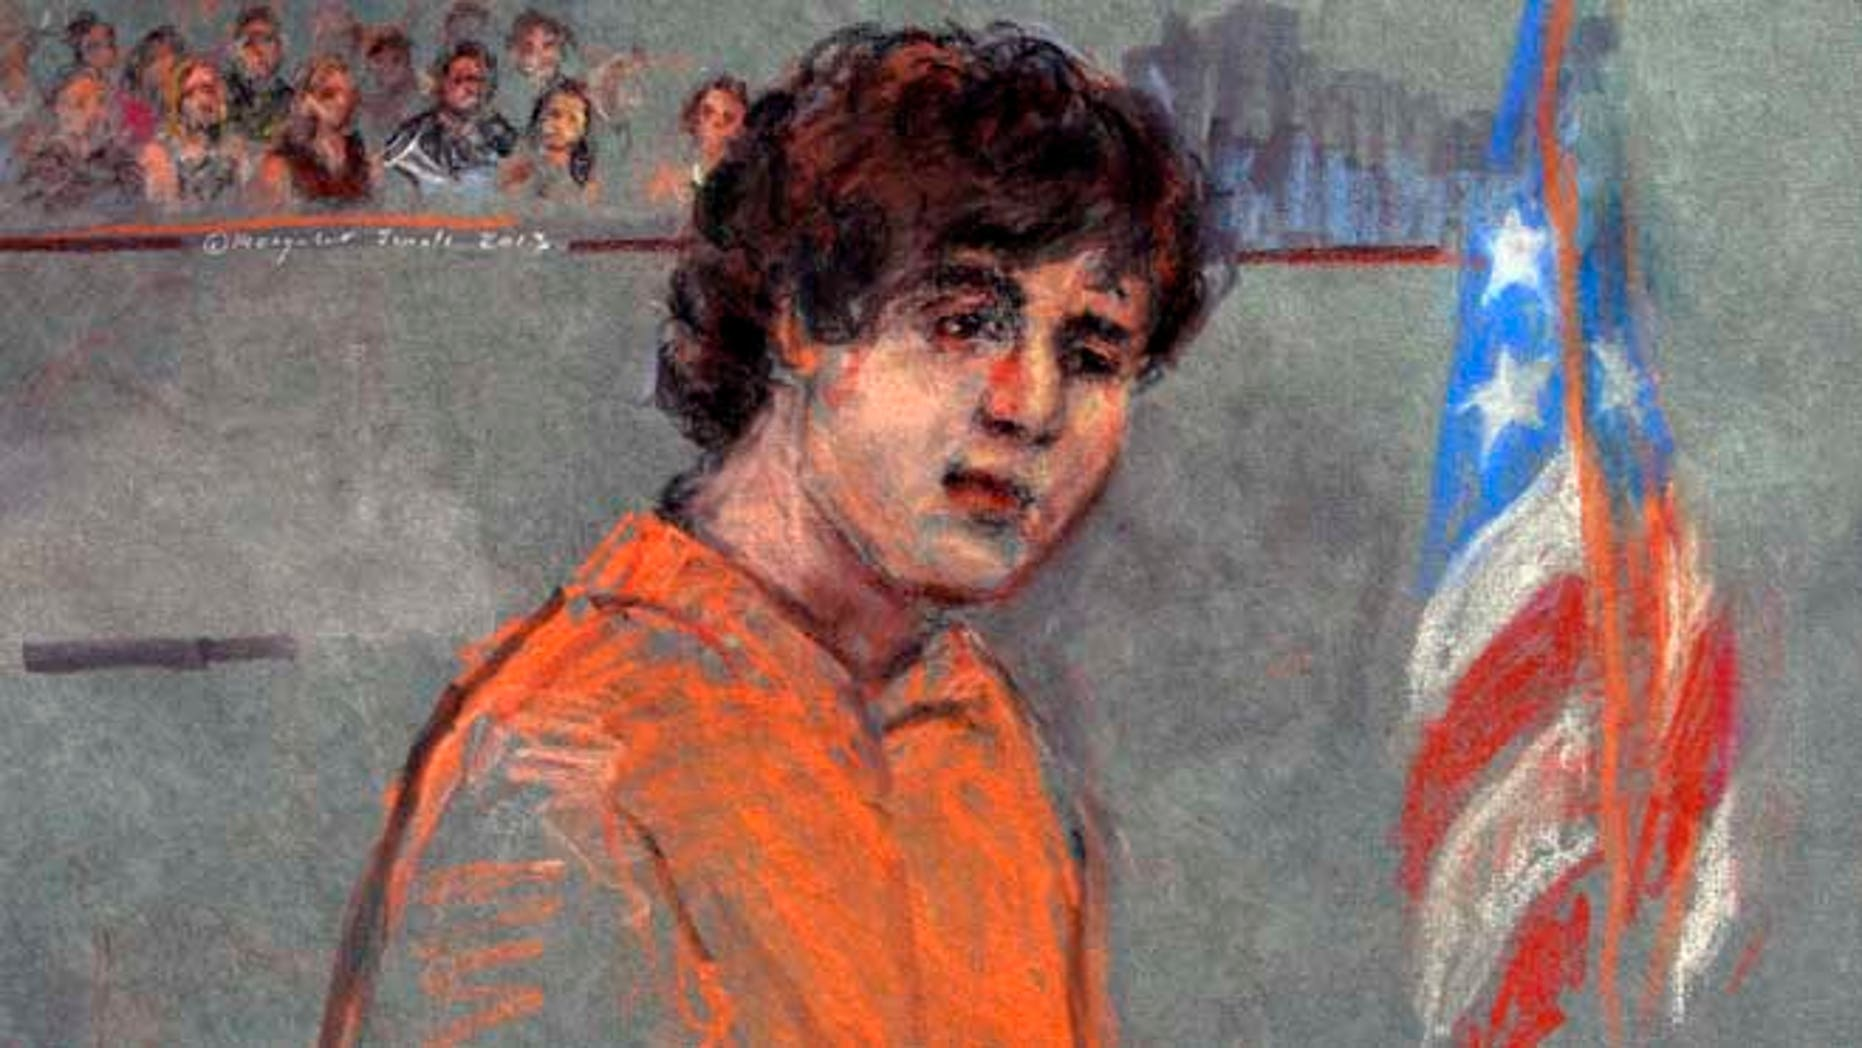 July 10, 2013: This courtroom sketch depicts Boston Marathon bombing suspect Dzhokhar Tsarnaev during arraignment in federal court in Boston.